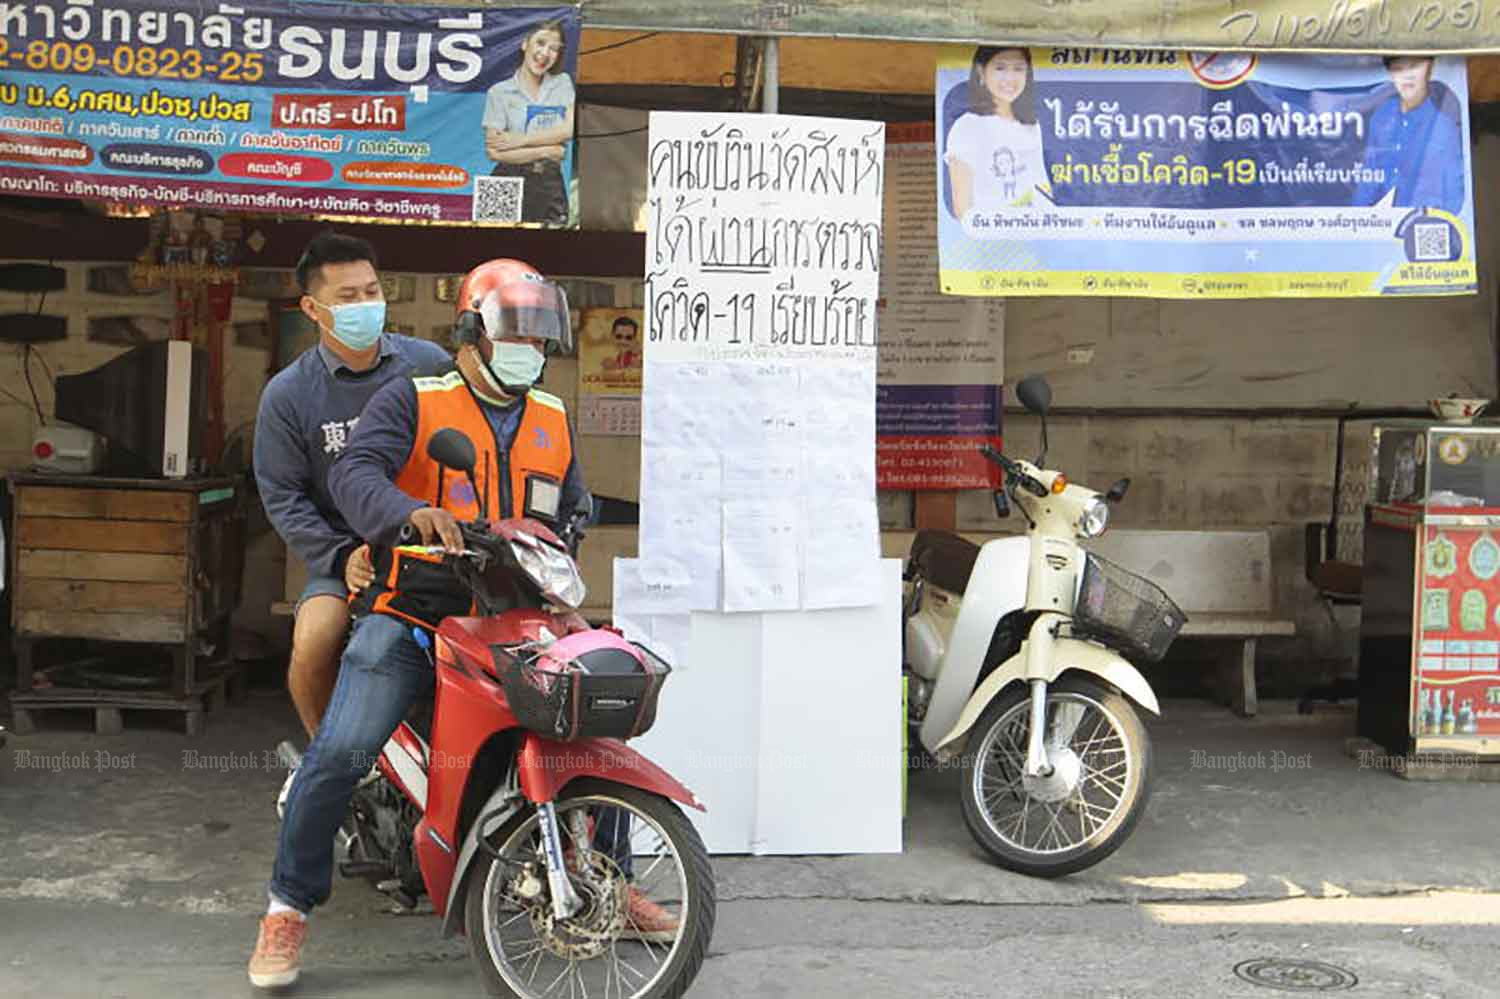 A taxi motorcyclist is sending a client on Soi Wat Sing in Chom Thong district of Bangkok on Tuesday. A poster was hung at his stand reading taxi motorcyclists there already tested negative for Covid-19. (Photo: Arnun Chonmahatrakool)